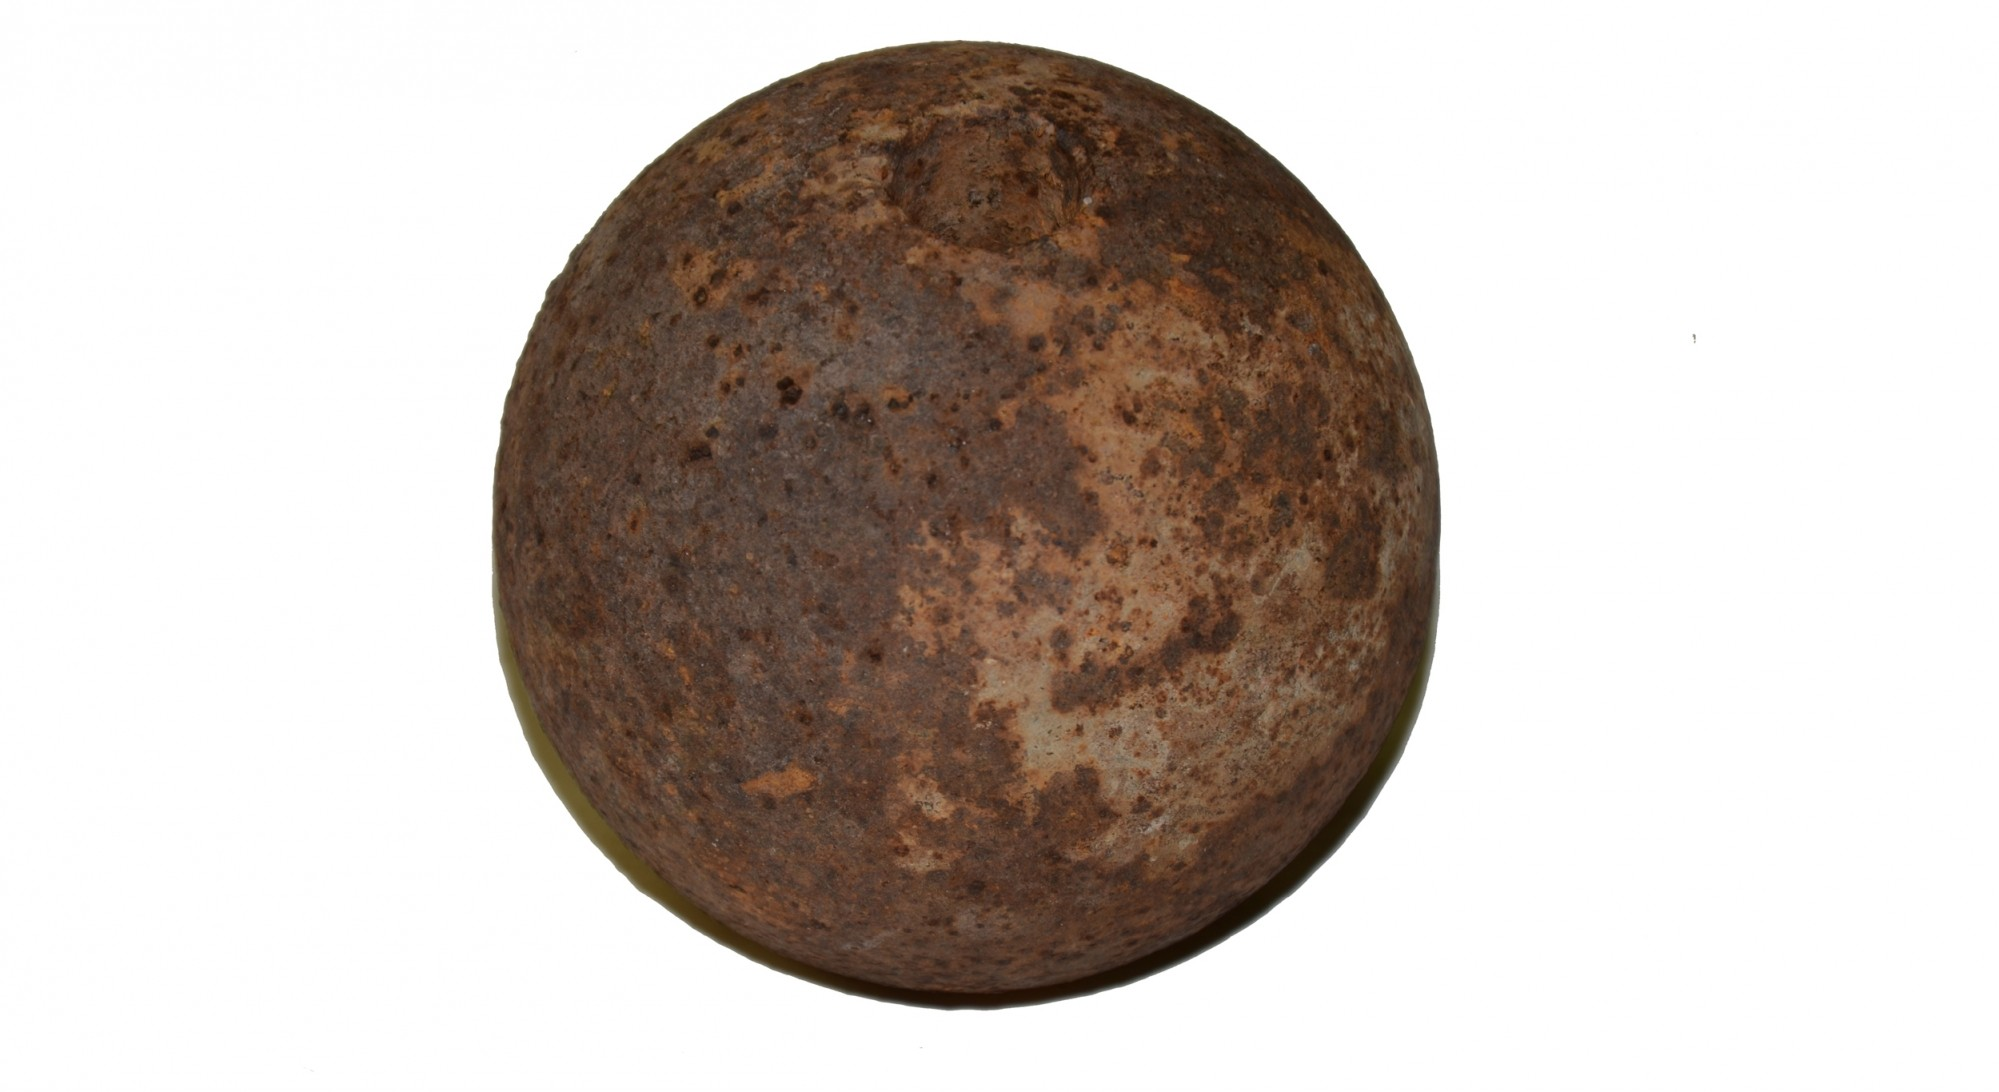 CS 4.52 INCH 12 POUNDER SPHERICAL SHELL FOUND AT GETTYSBURG